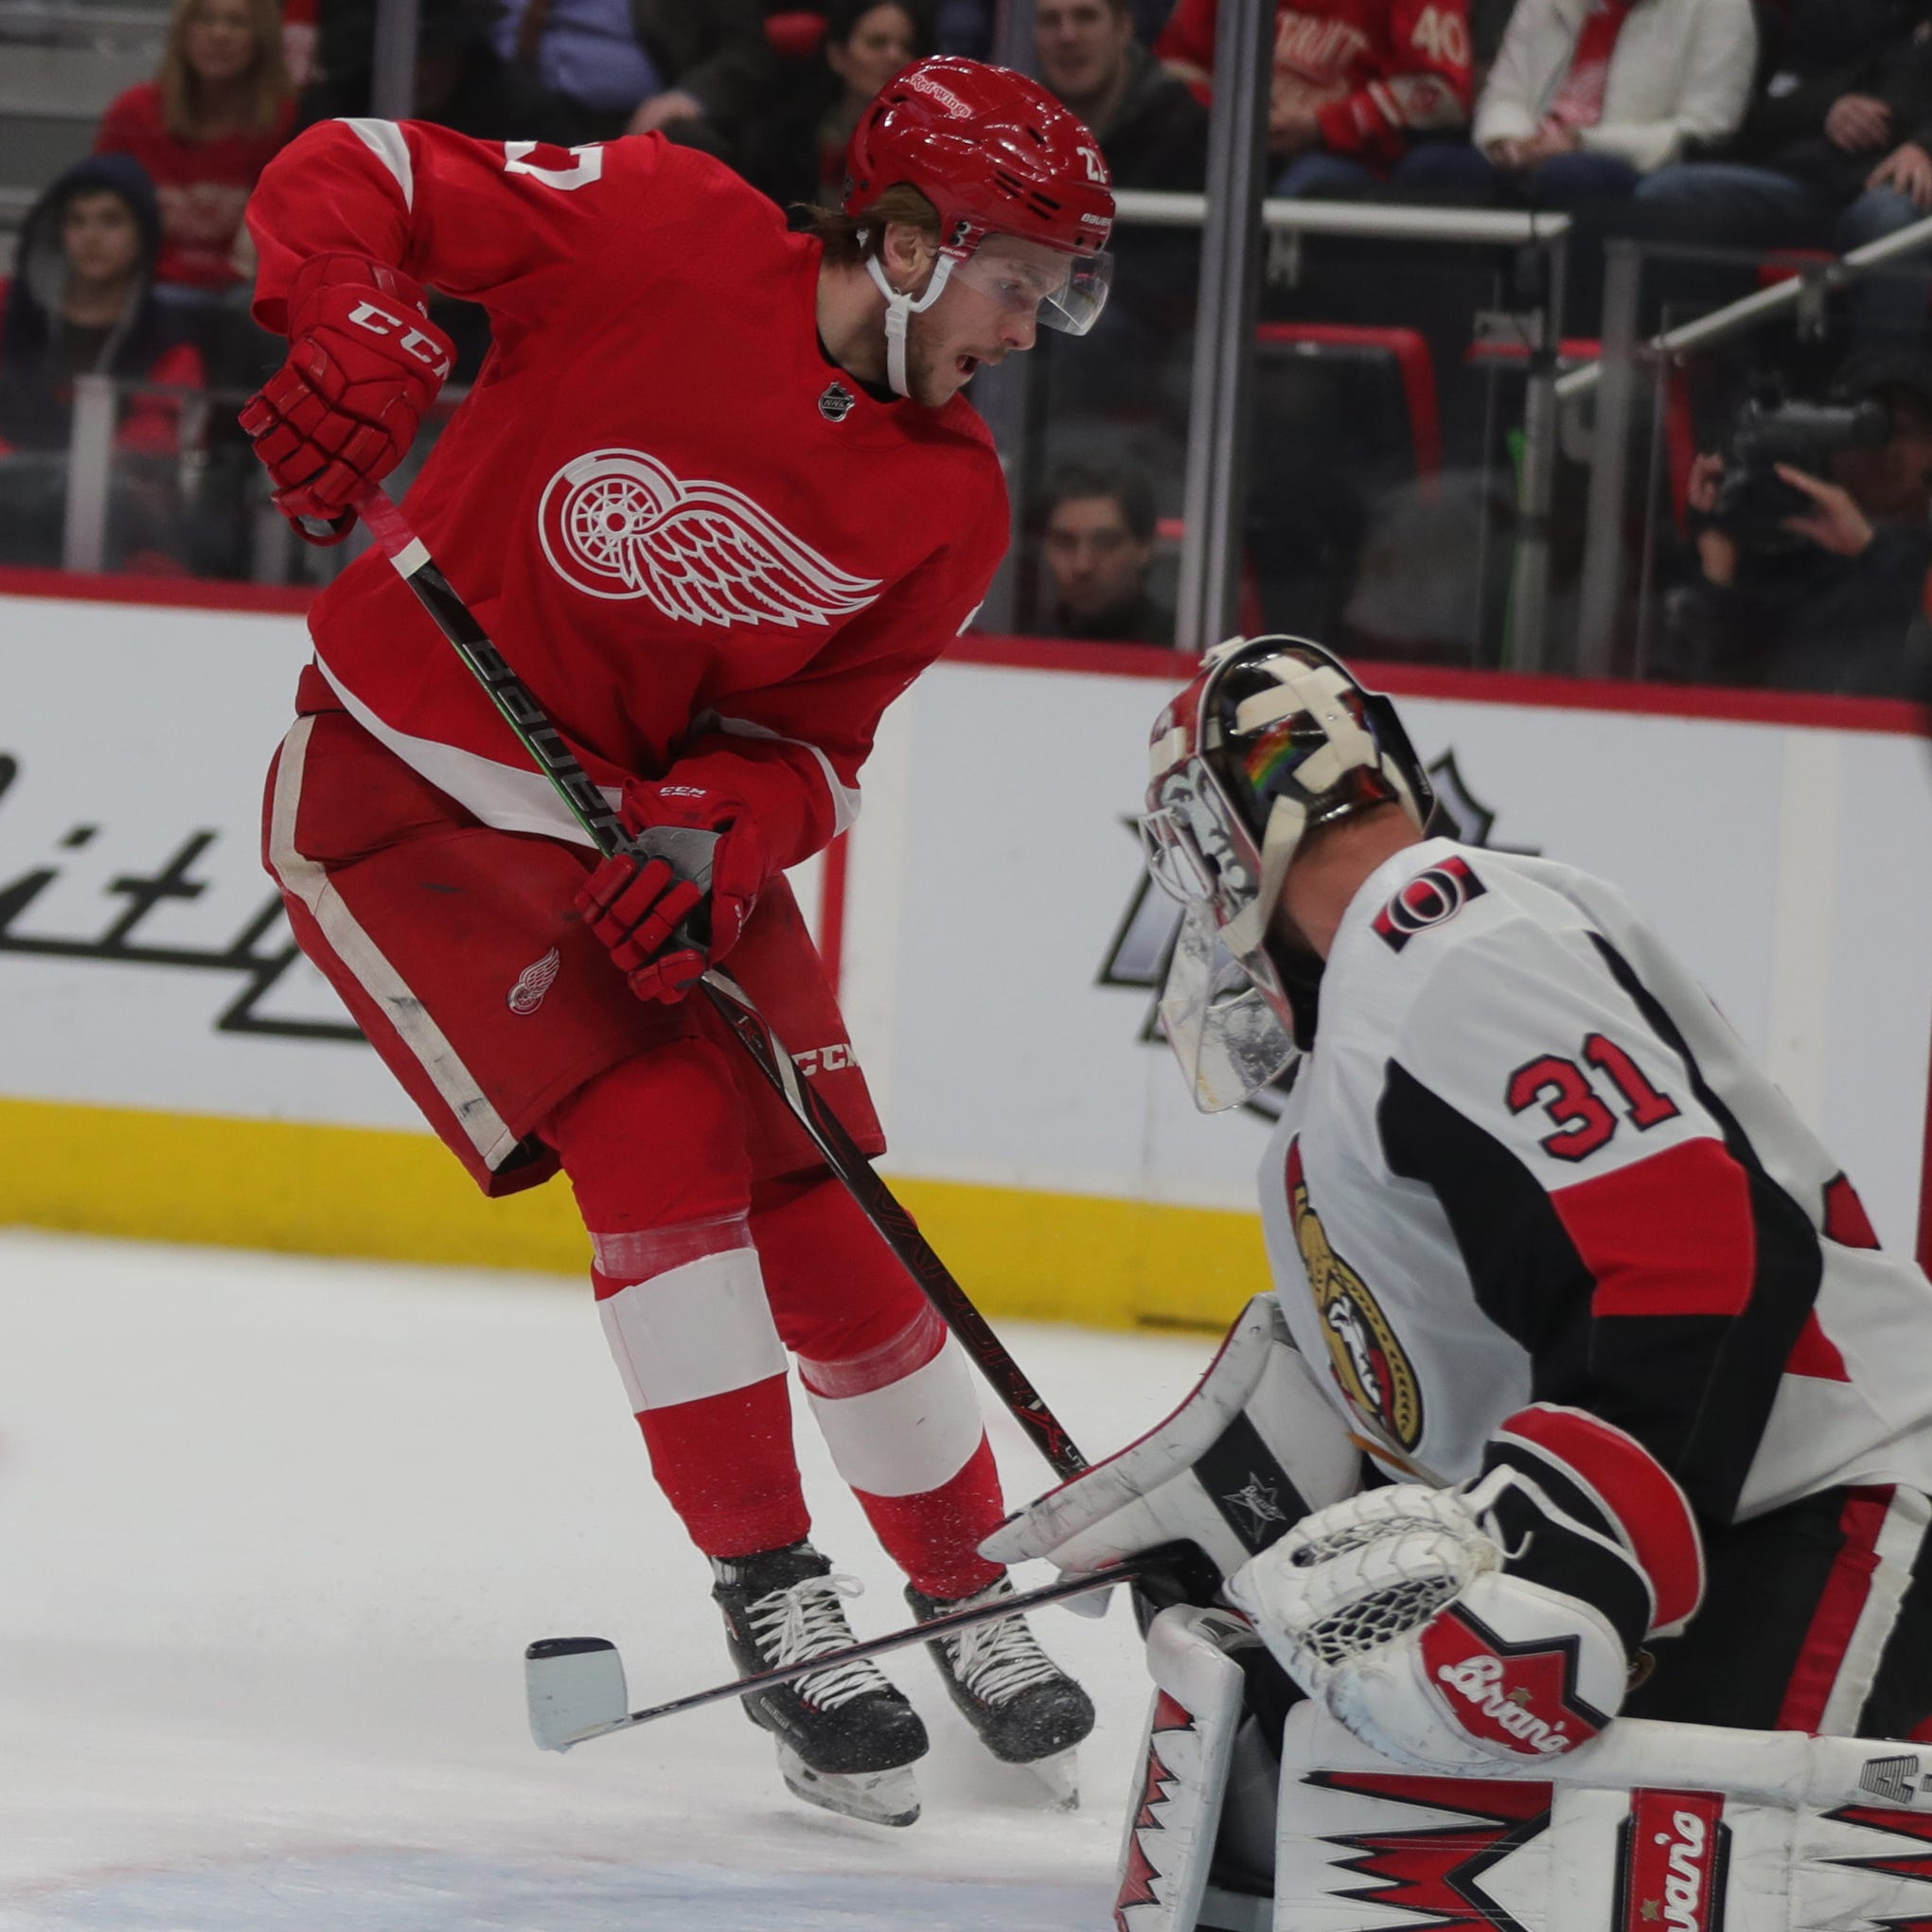 Detroit Red Wings keeping Michael Rasmussen is 'best for his development'